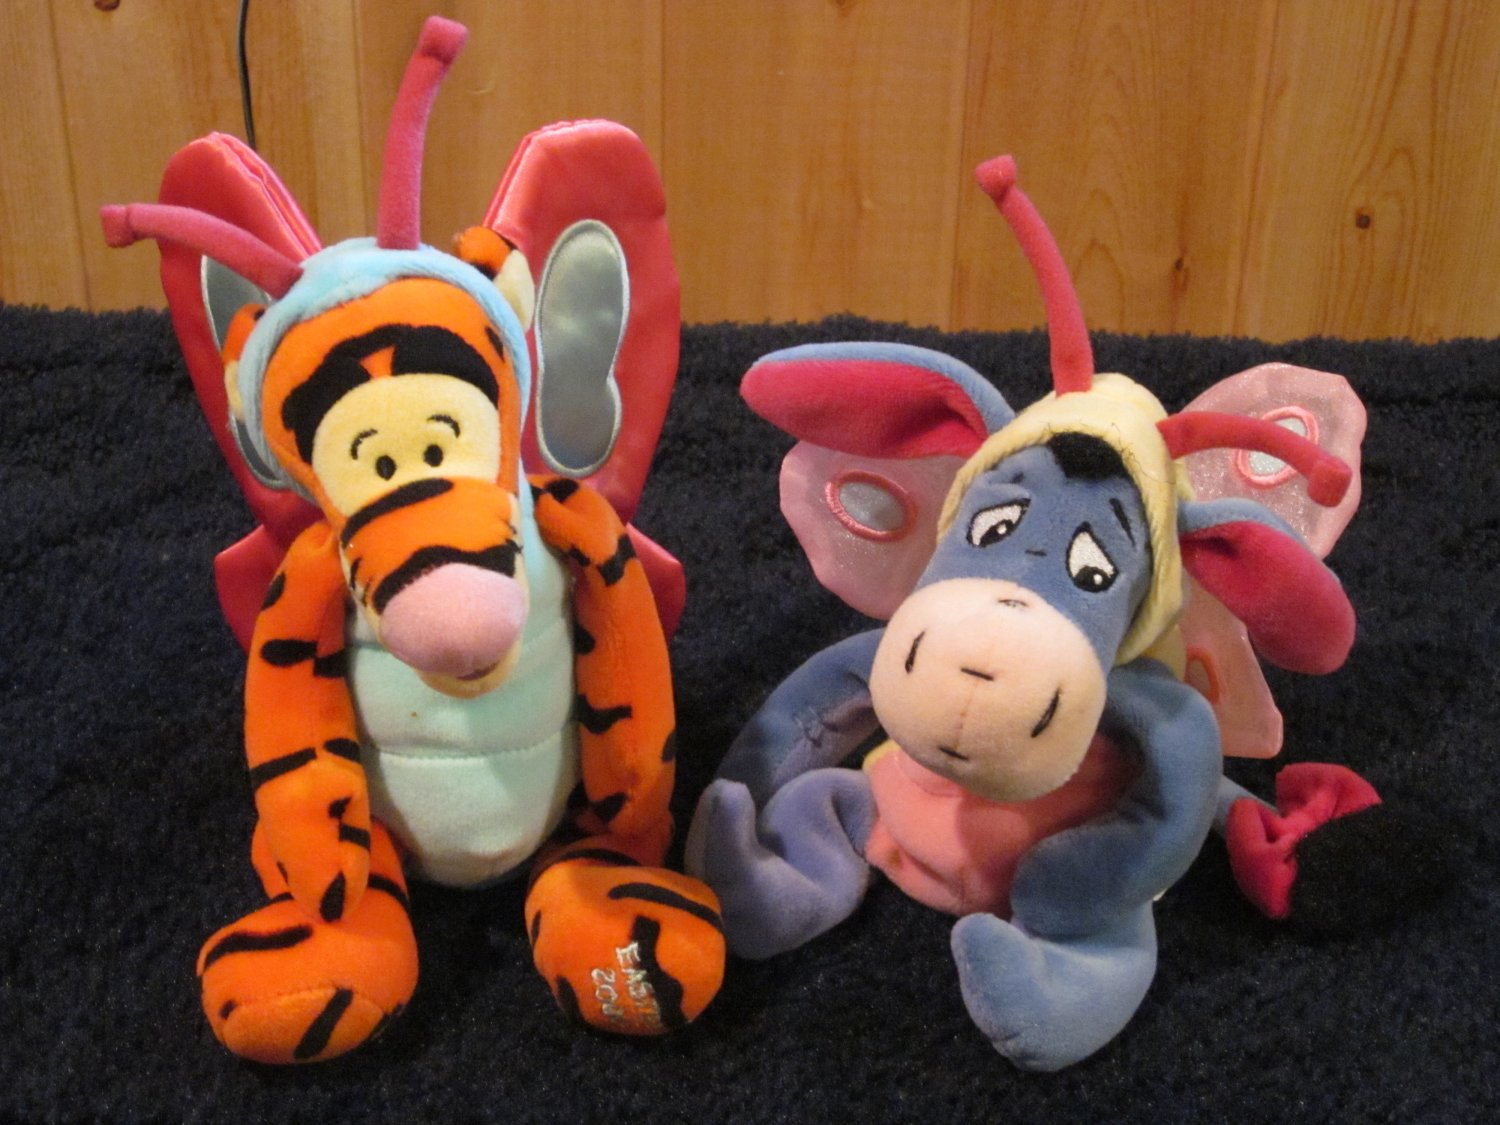 Disney Winnie The Pooh Plush Butterfly Eeyore and Tigger in costumes